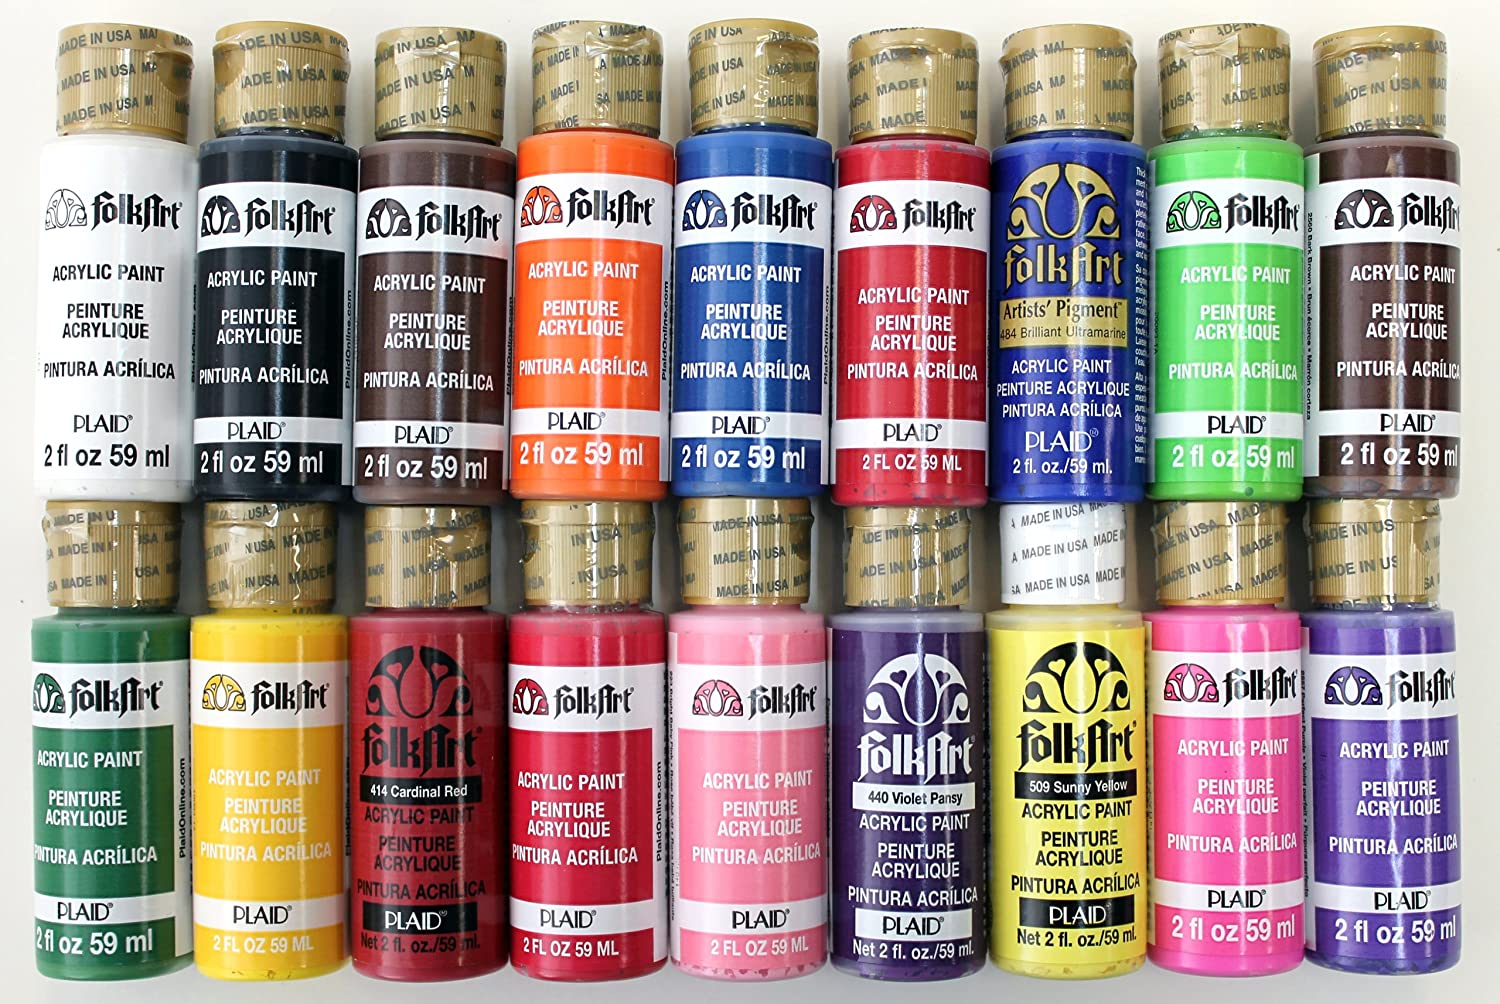 Folk art acrylic paint color chart - Amazon Com Folkart Acrylic Paint In Assorted Colors 2 Ounce Promofai Best Selling Colors I 18 Pack